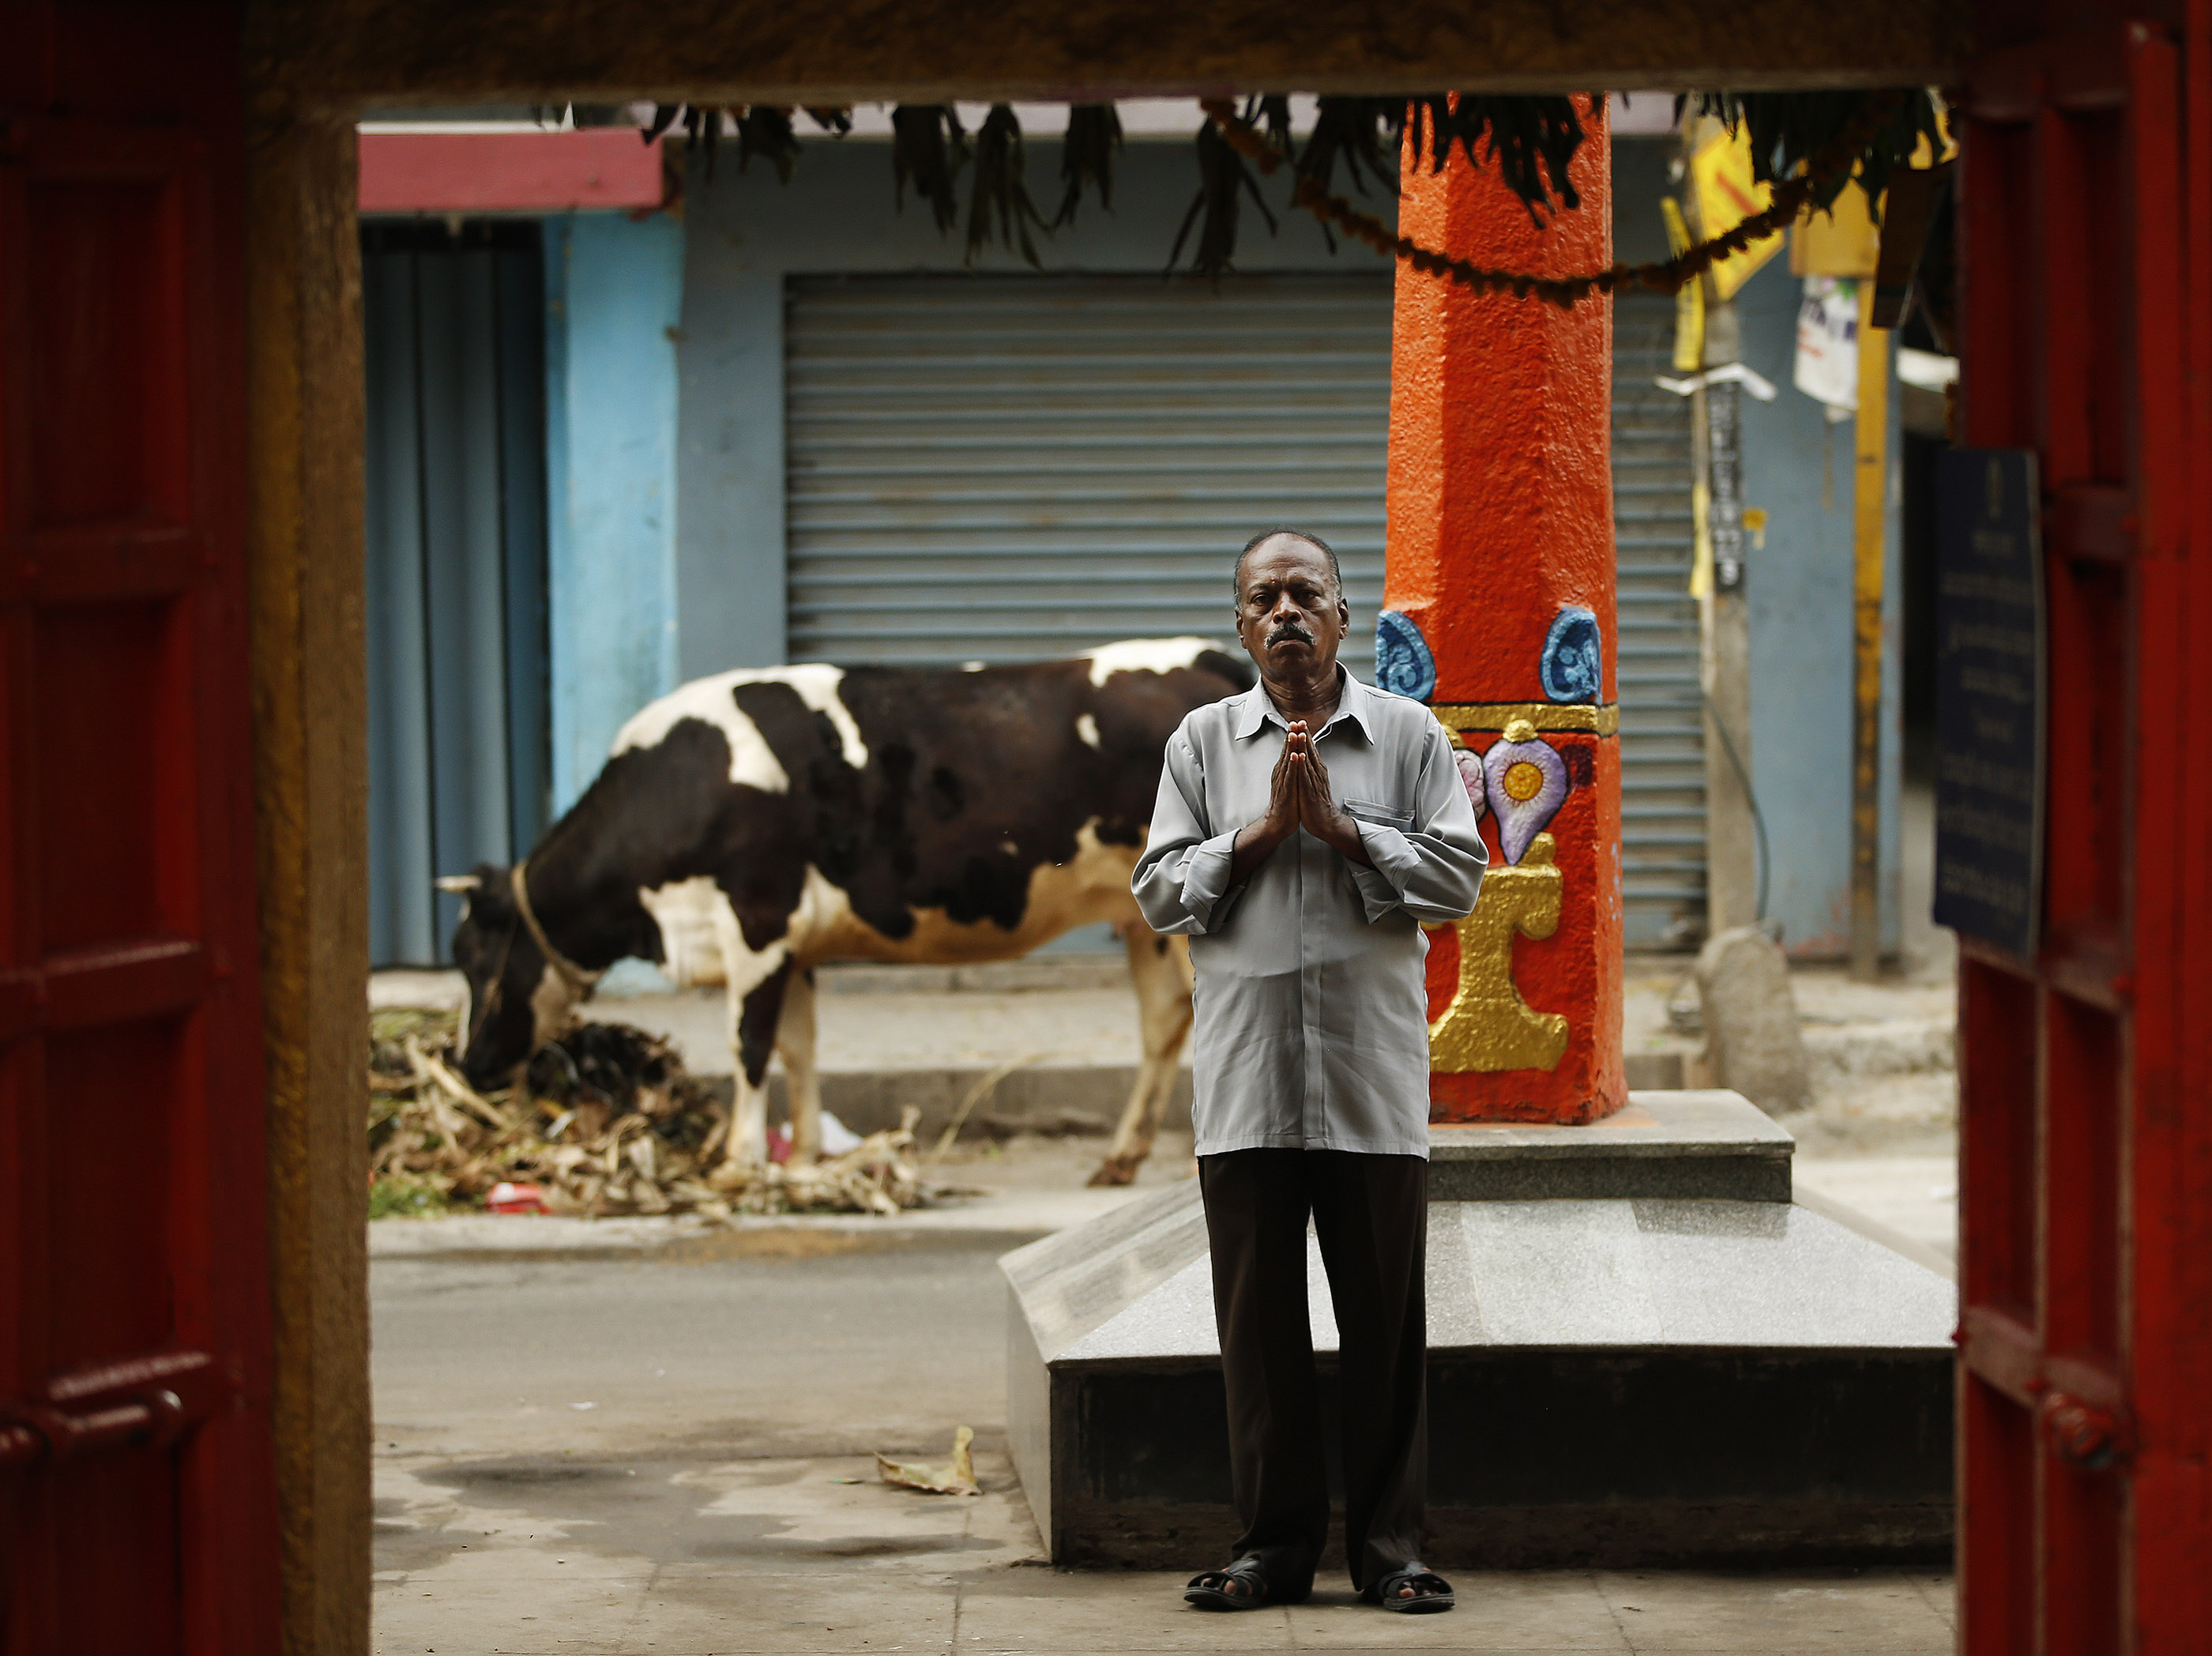 A man prays at a Hindu temple as a cow eats in a street in Bengaluru, India, on Thursday, April 19, 2018.